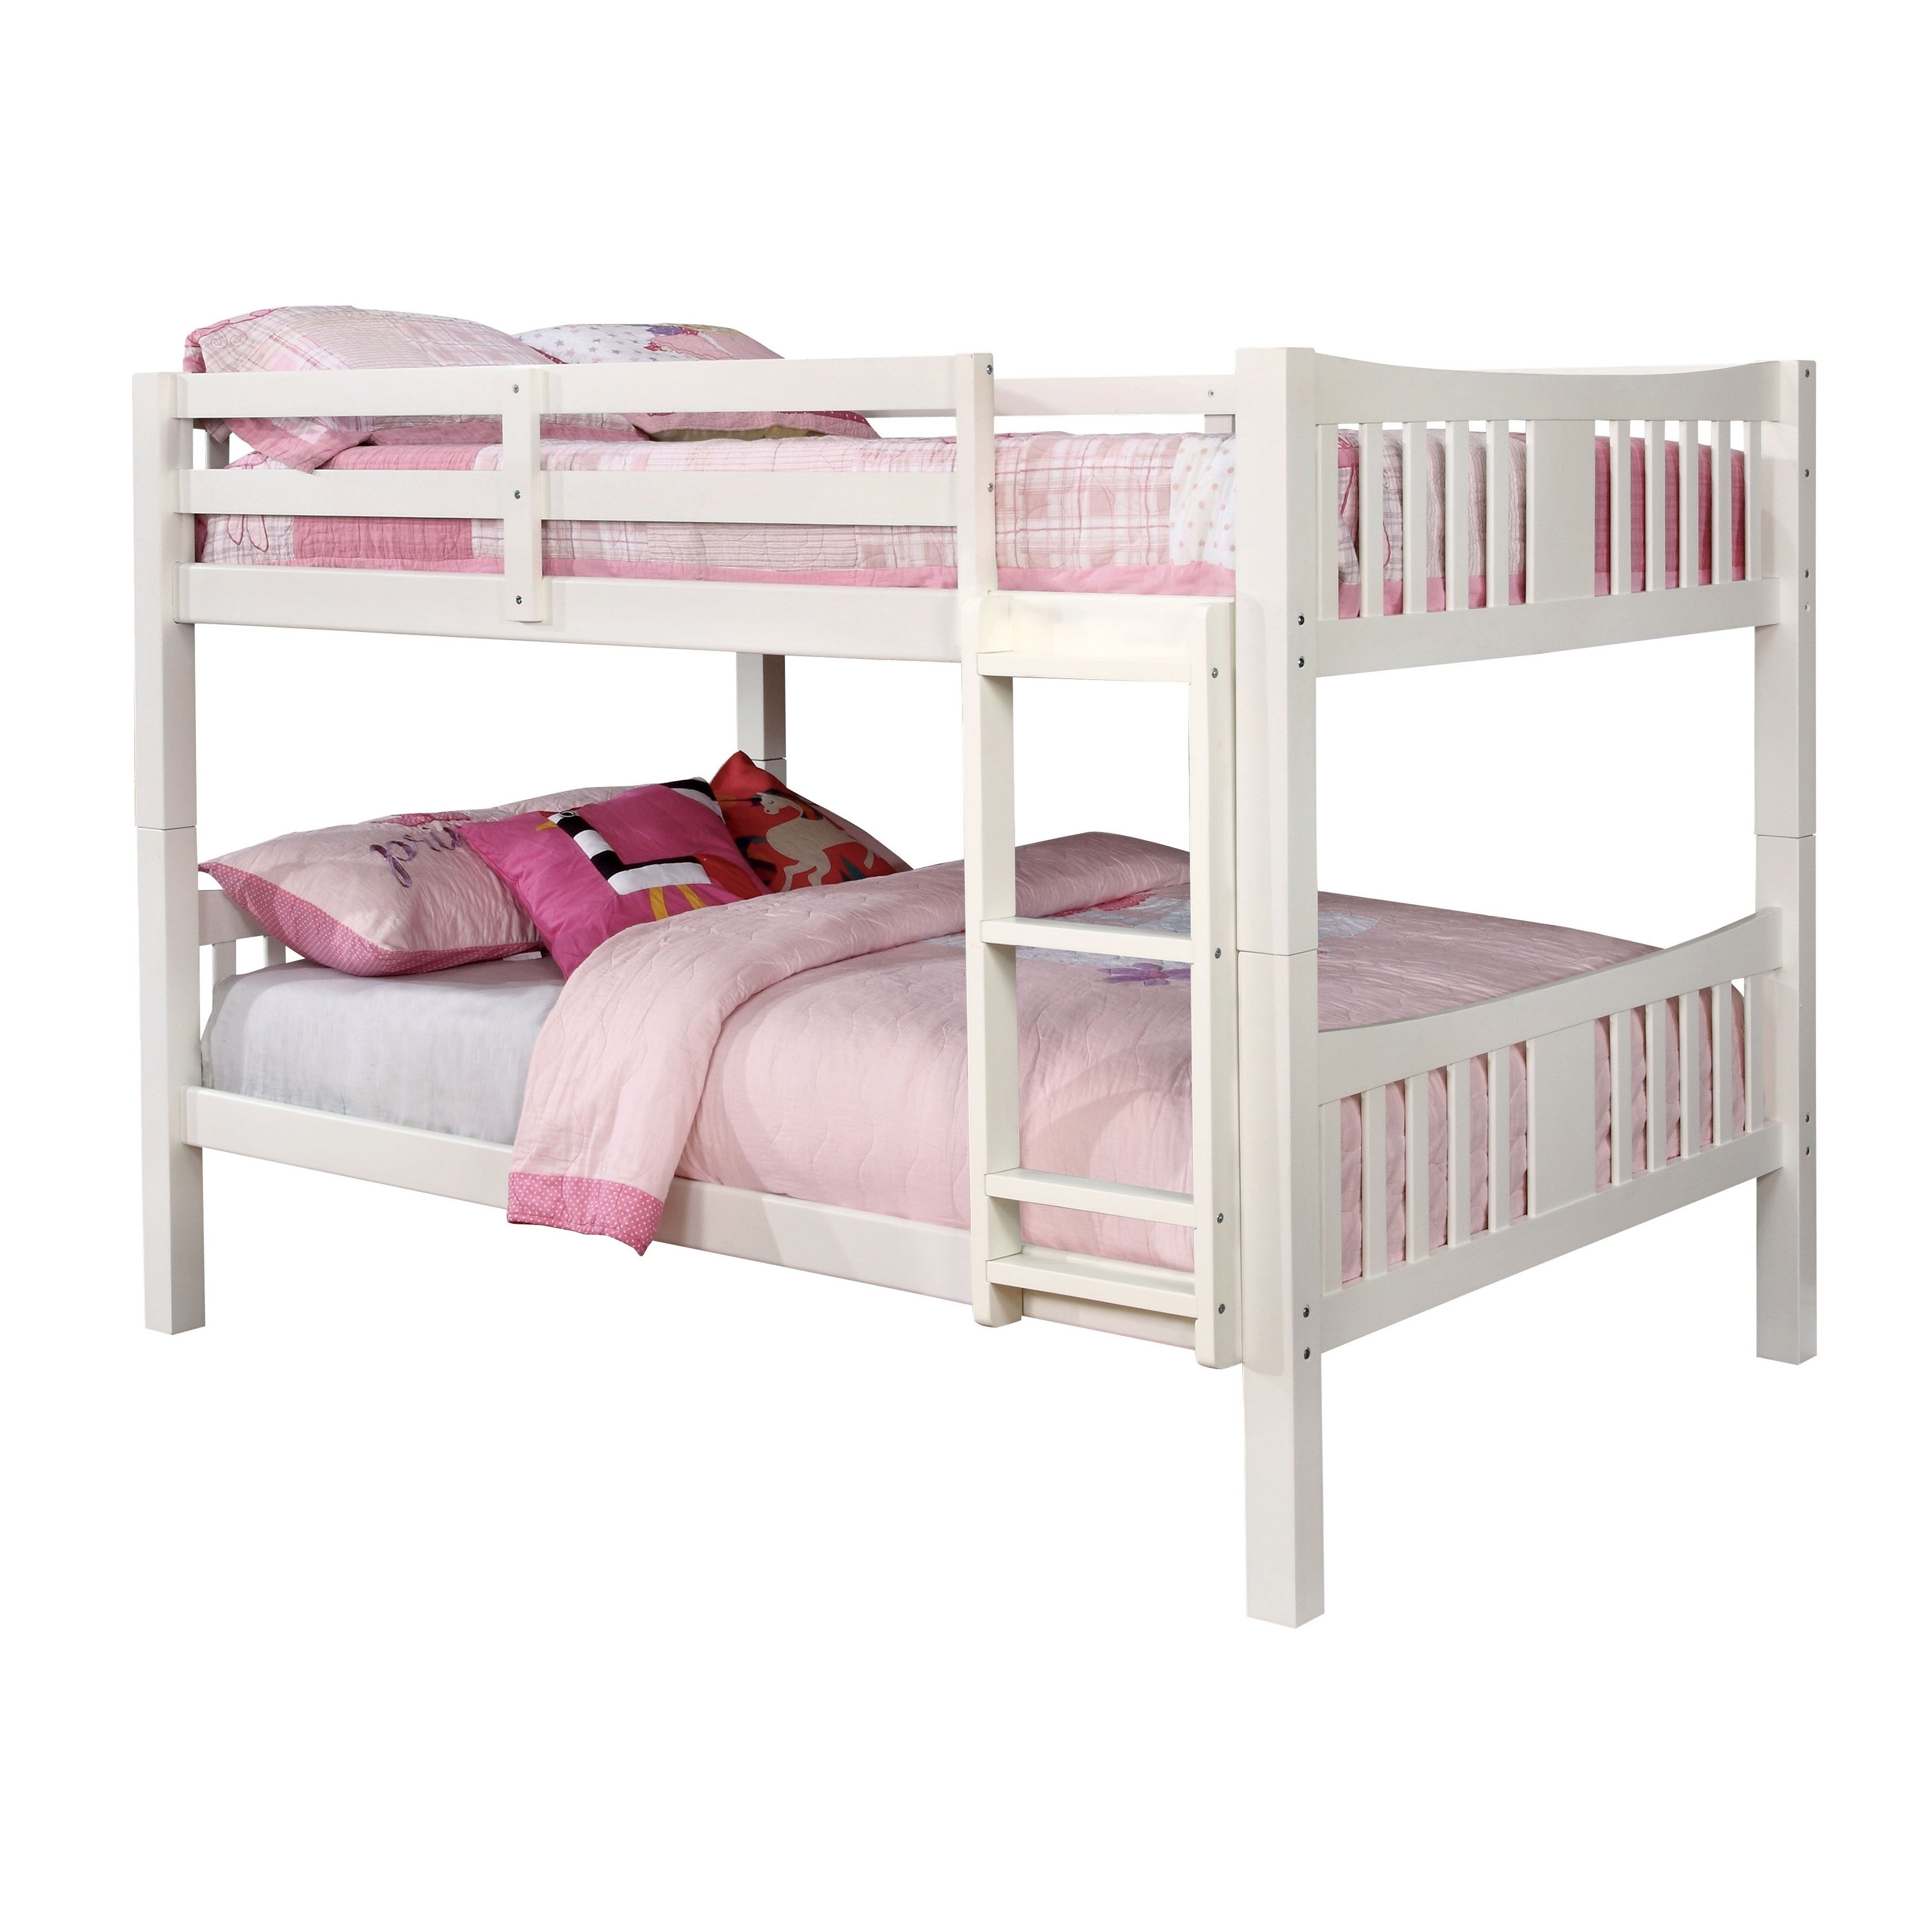 Shop Furniture Of America Pello Full Over Full Slatted Wooden Bunk